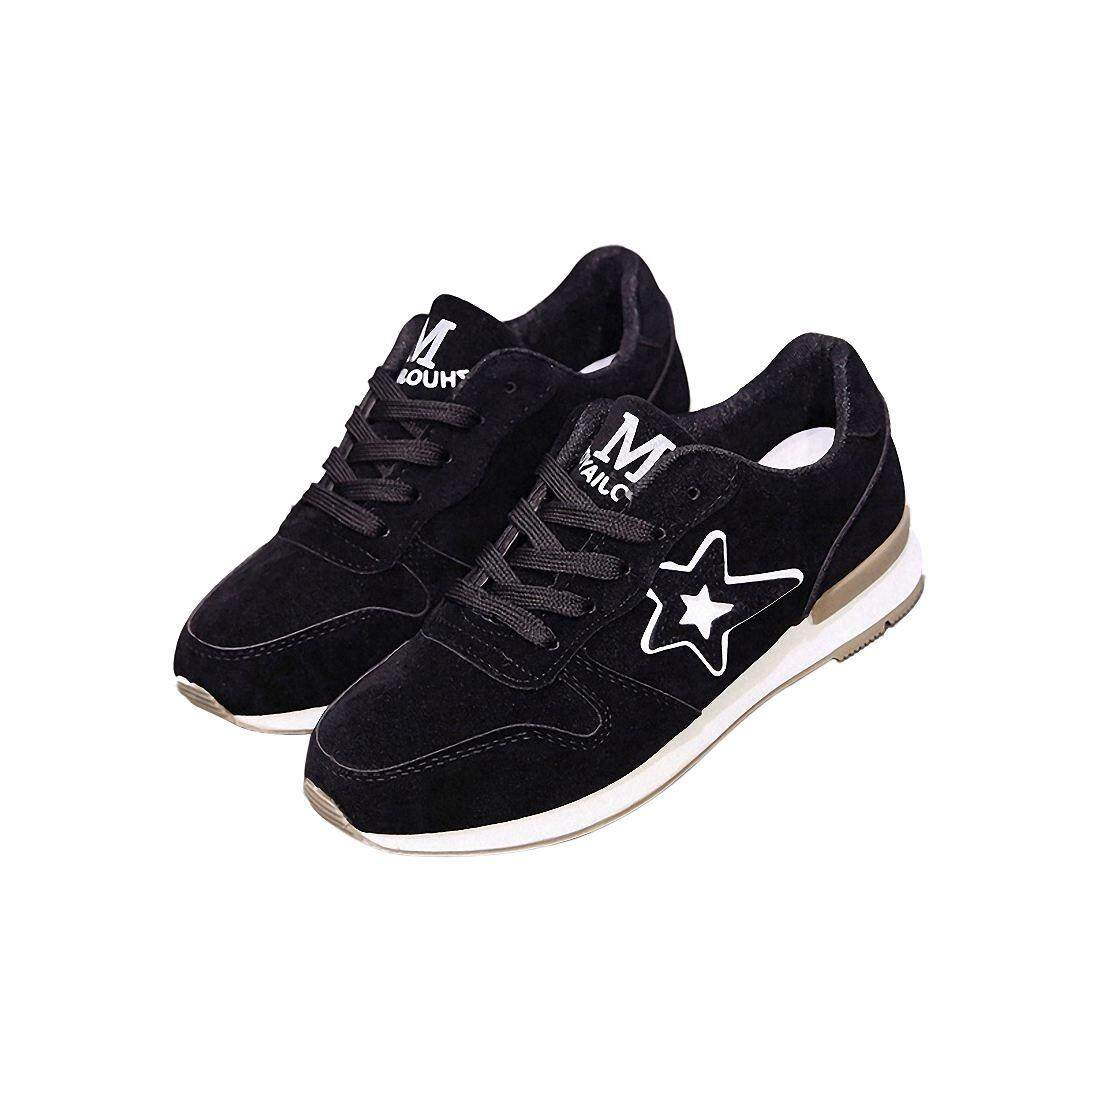 1 Pairs Of Black Sports Shoes Five-Pointed Star Student Skid Shoes Breathable Leisure Travel Shoes Hiking Shoes Us8.5 = Eu39 Feet 245mm By Fastour.